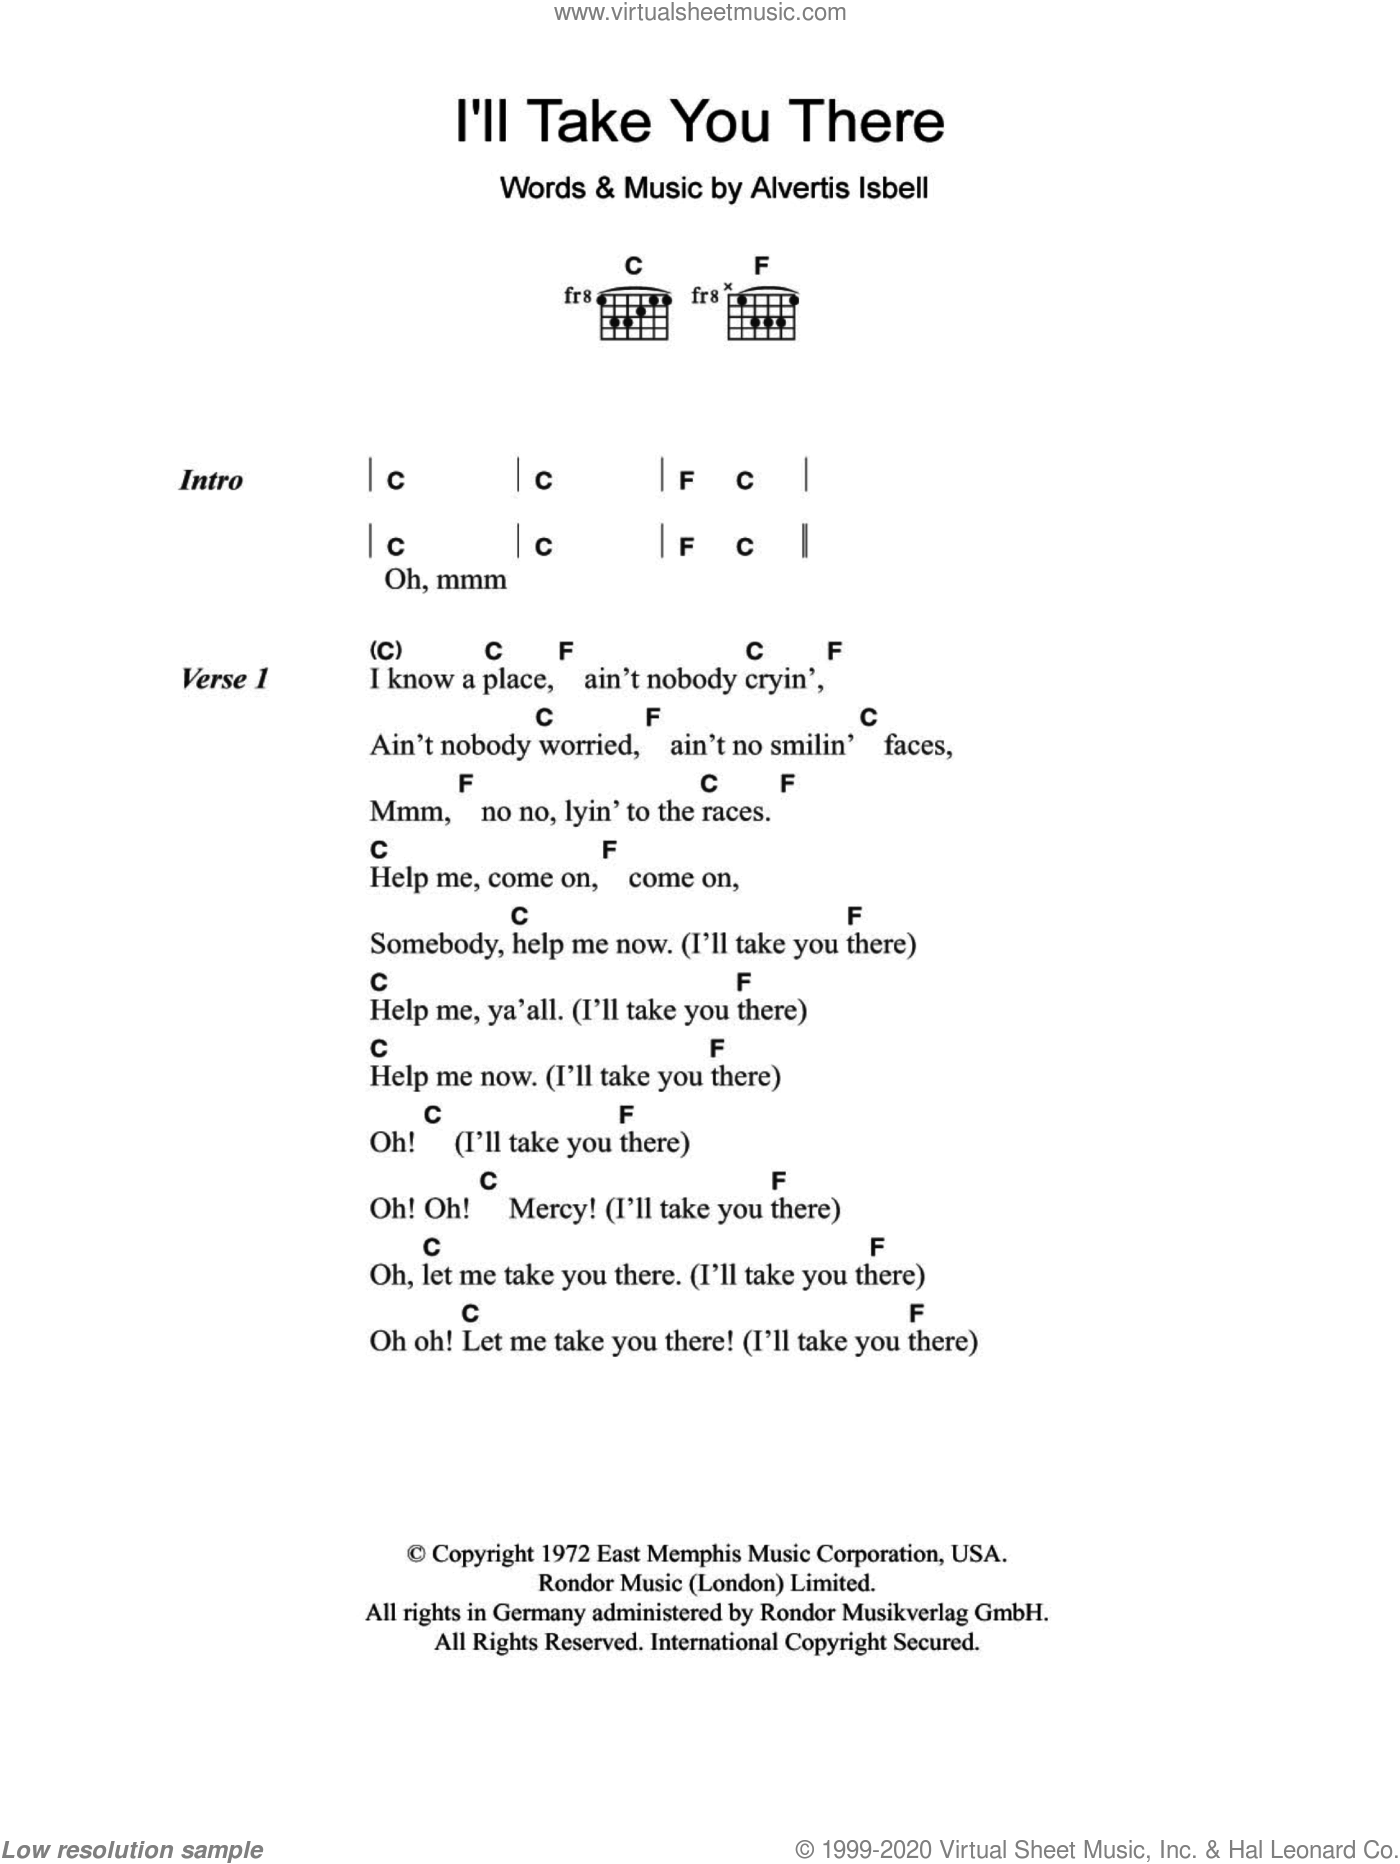 I'll Take You There sheet music for guitar (chords, lyrics, melody) by Alvertis Isbell